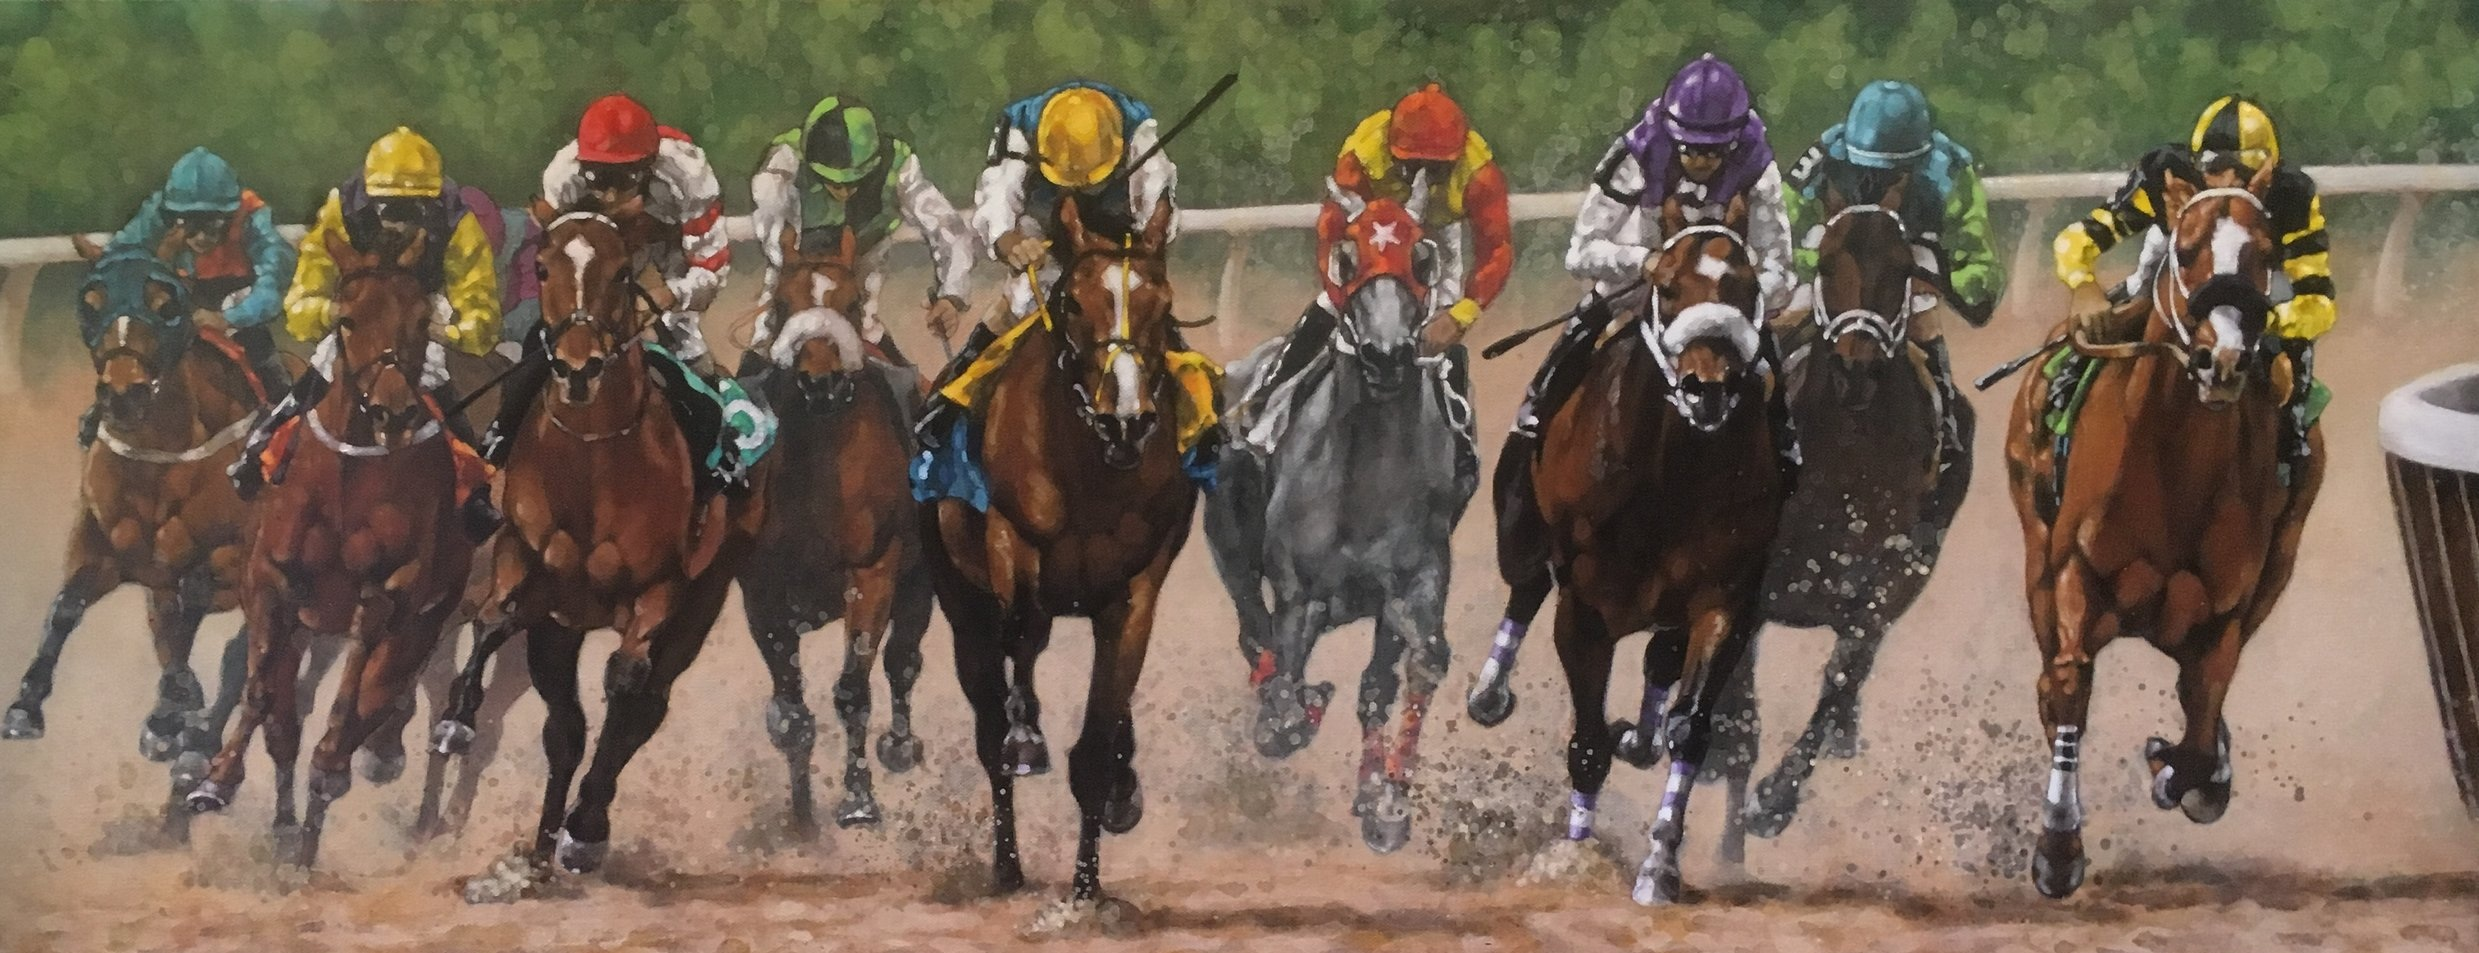 Down the Stretch they Come, 16x40